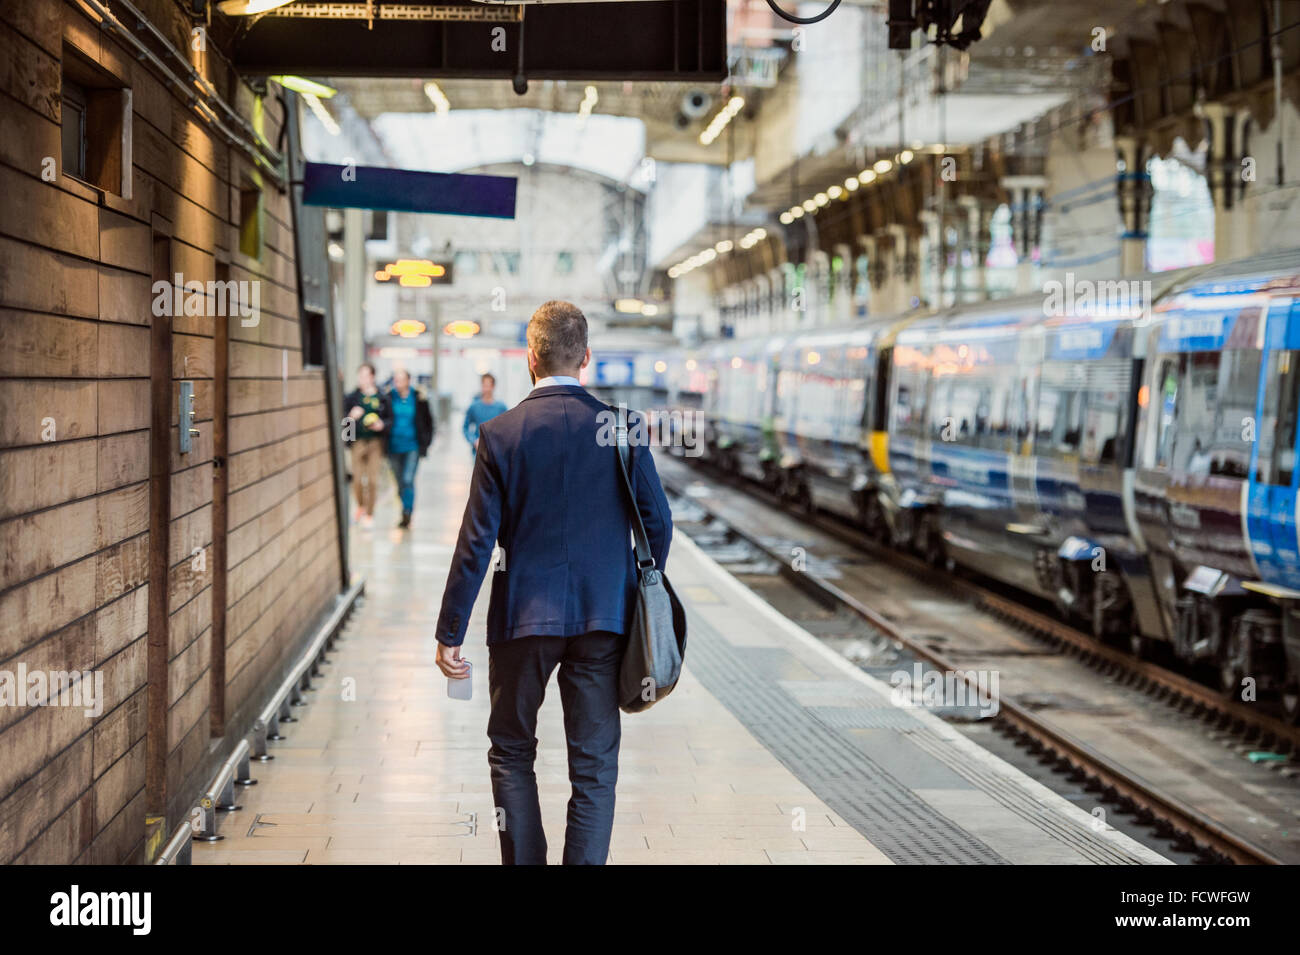 Businessman at the station - Stock Image